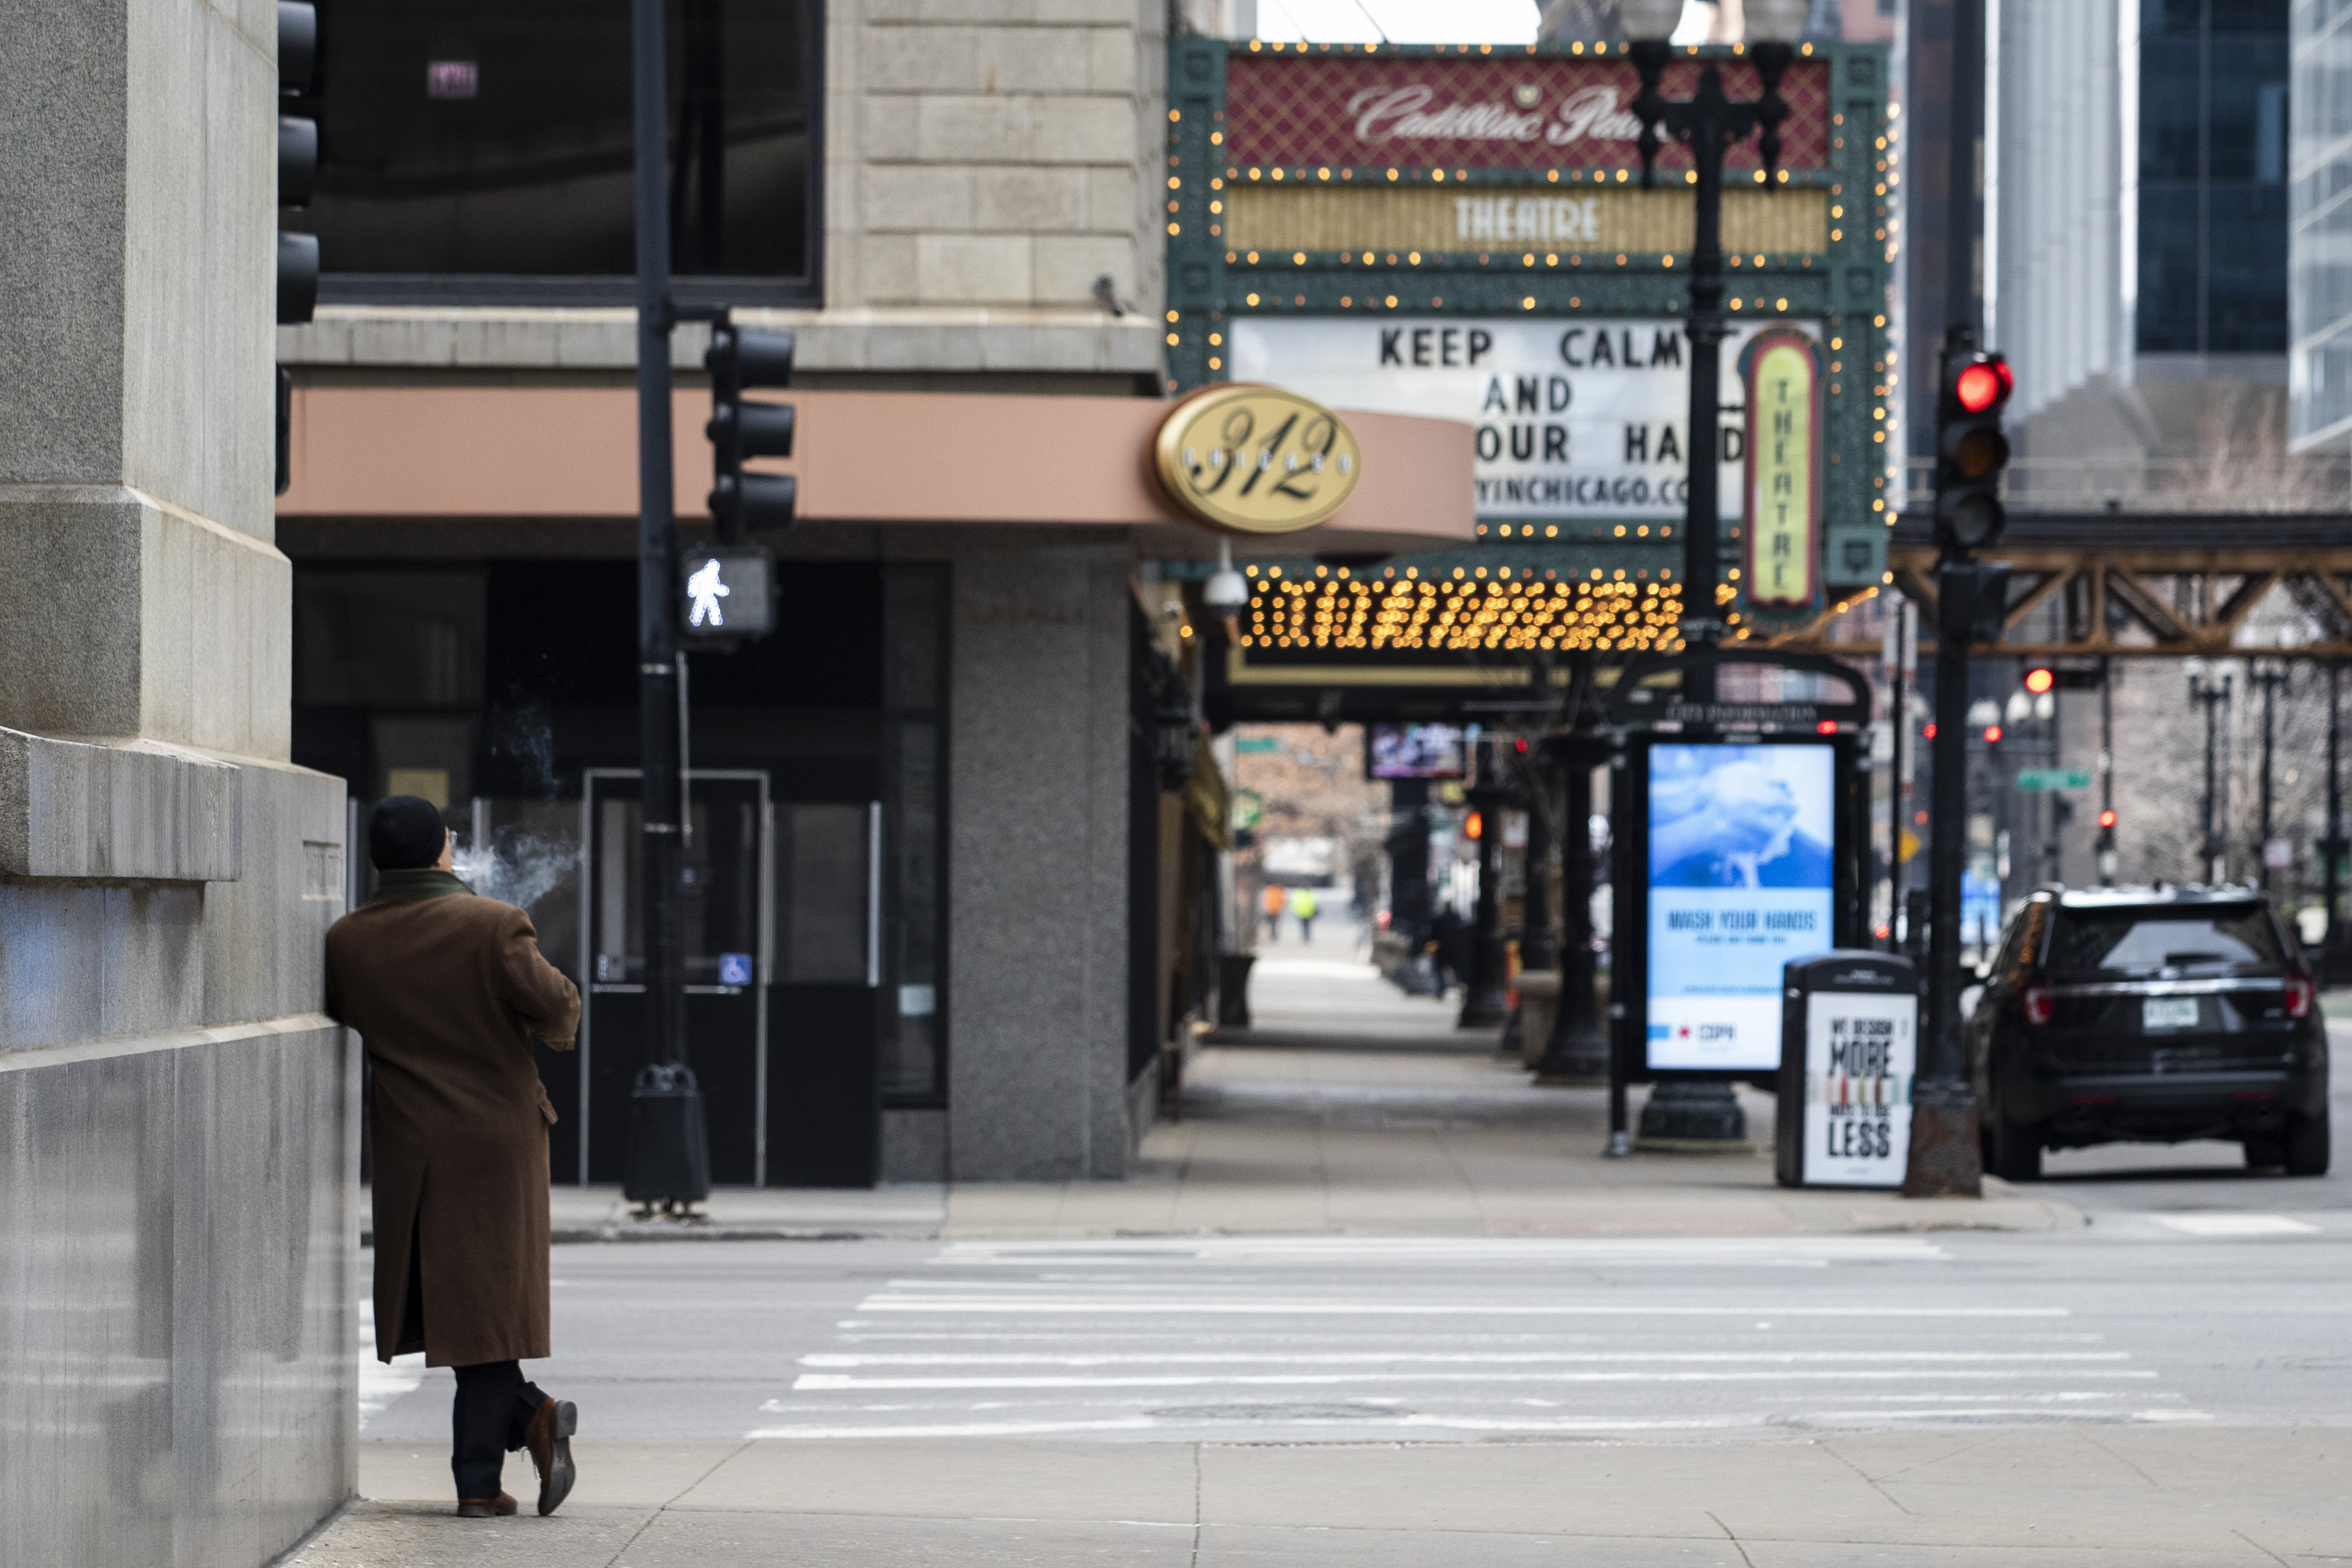 Amid fears of the coronavirus pandemic, a man has the sidewalk to himself as he smokes a cigarette at the corner of Randolph and LaSalle in the Loop, Tuesday afternoon, March 24, 2020.